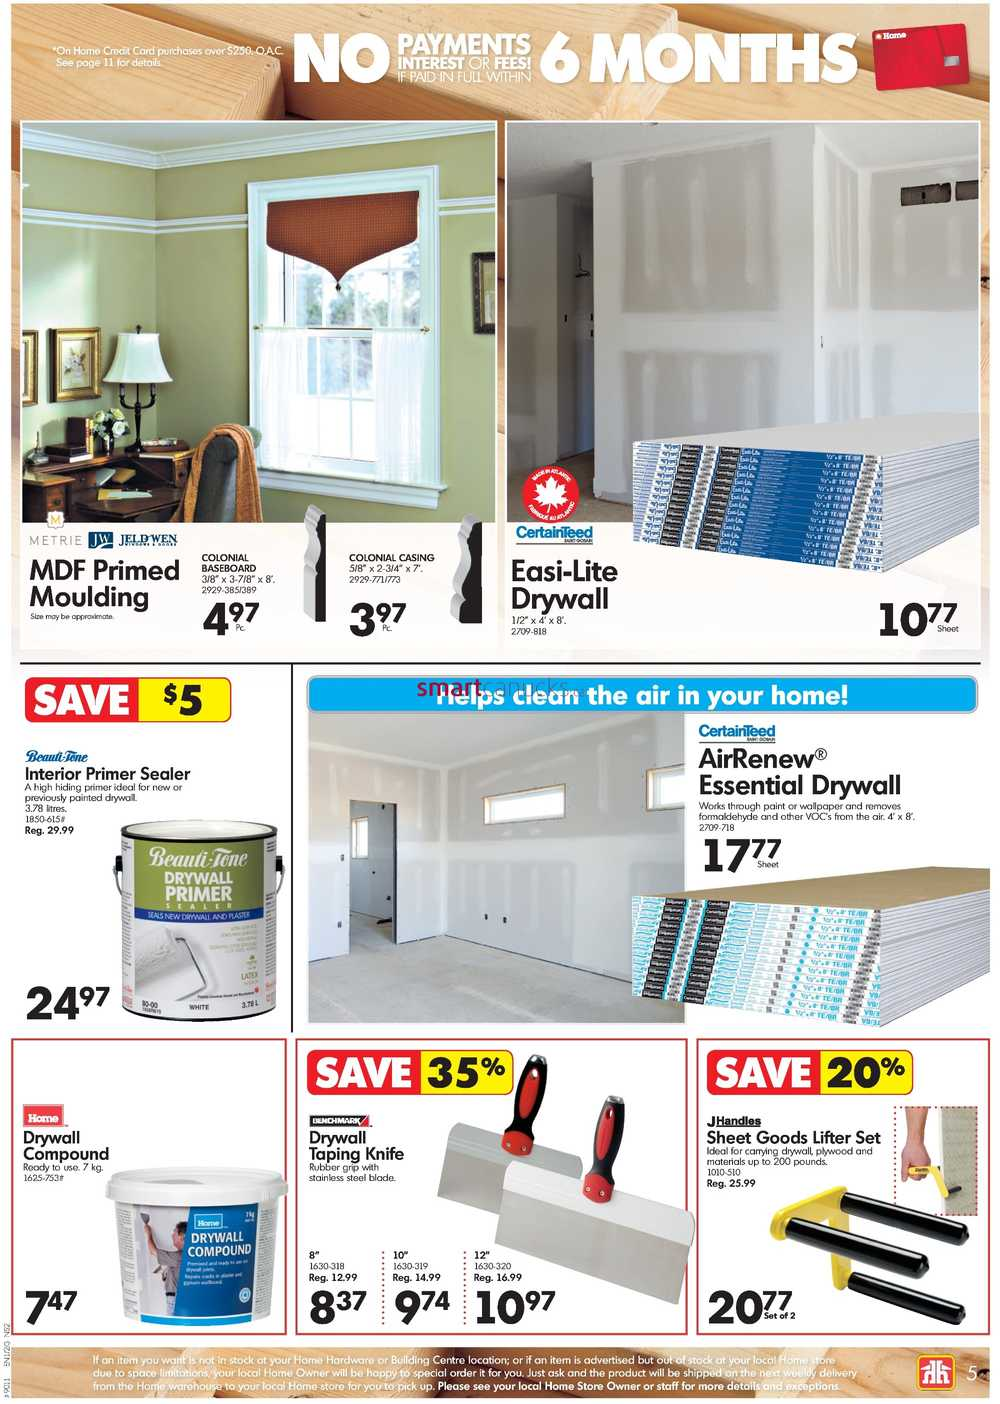 Home Hardware Building Centre (Atlantic) Flyer September 21 to October 1